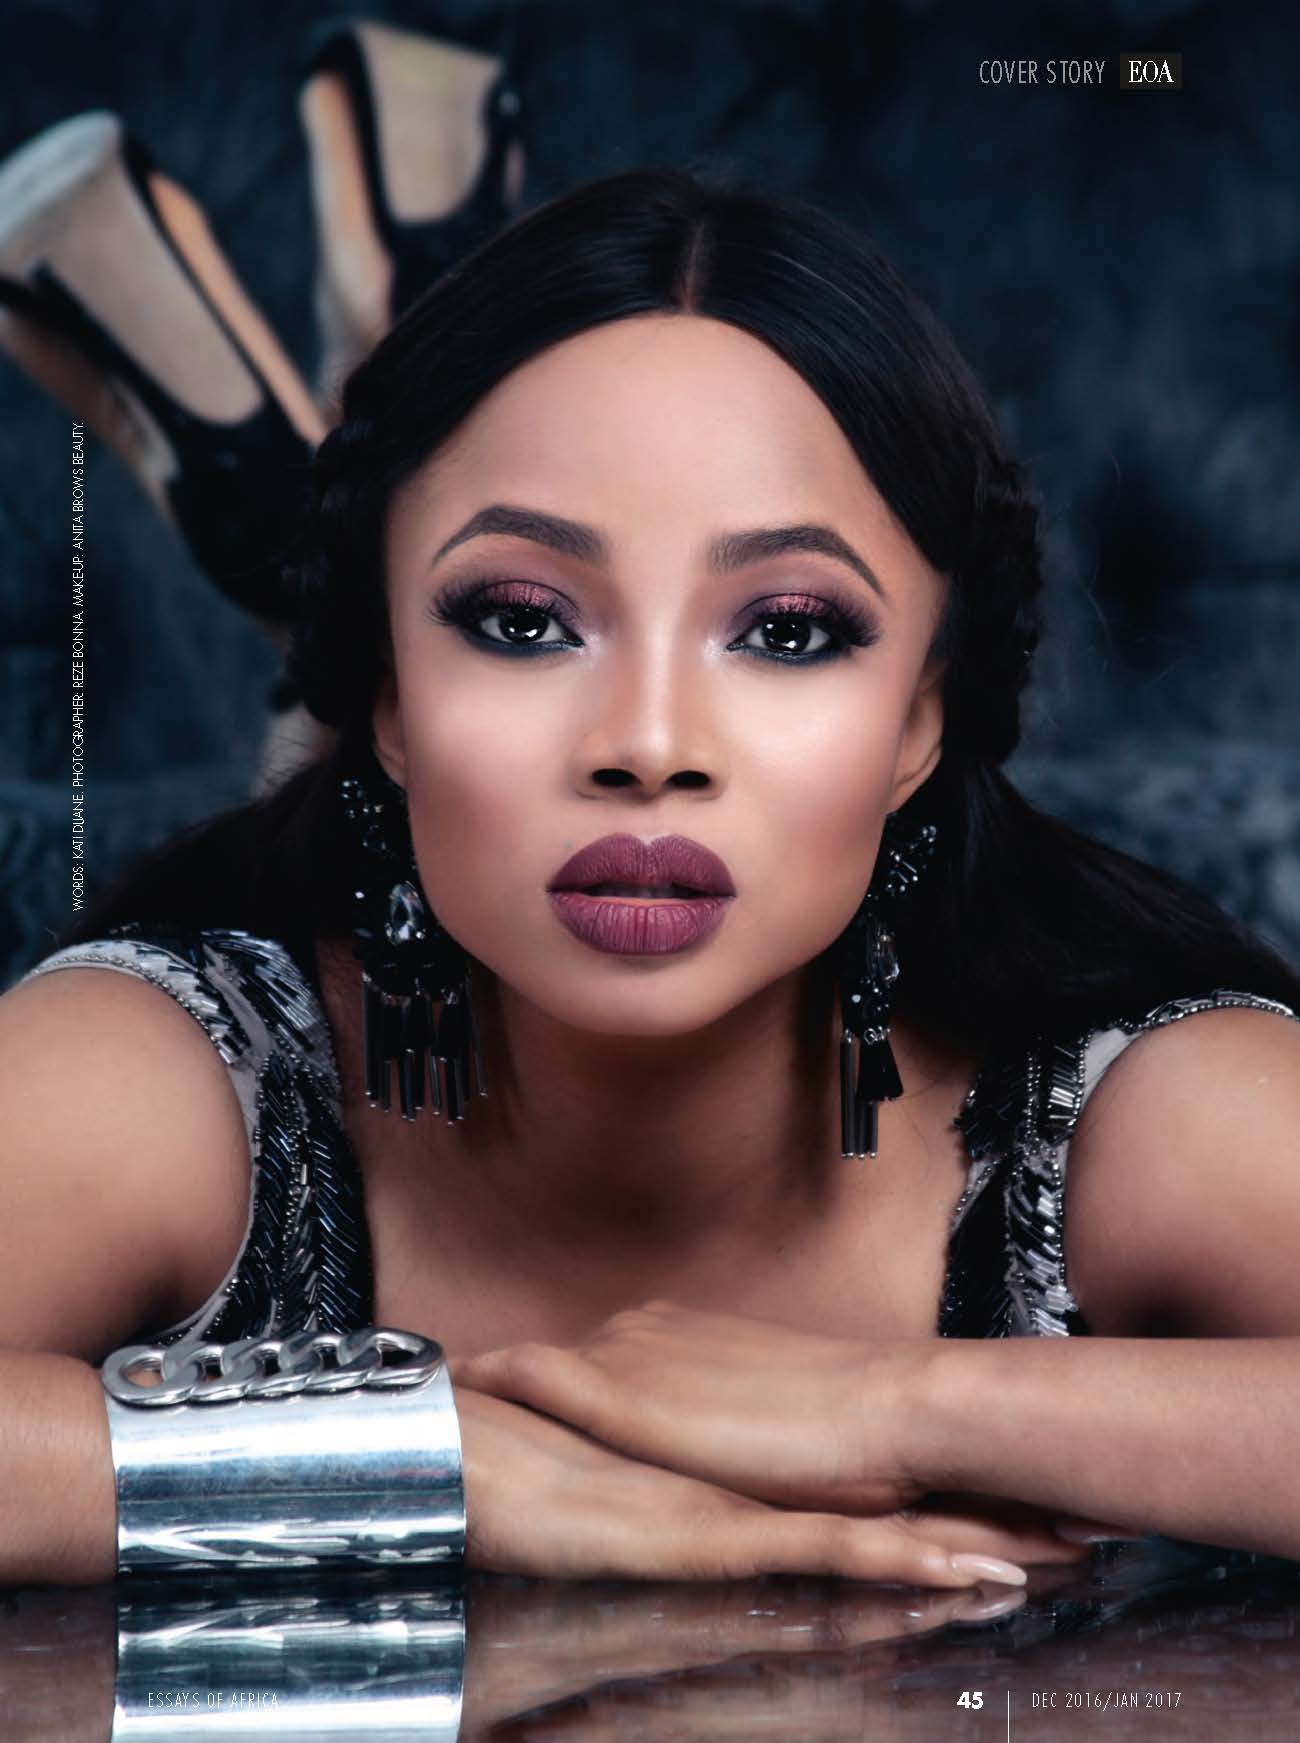 interviews on the experiences of marriage The father of a 25-year-old son, joe, by his first marriage married for the past four years to iman, the former fashion model, who now runs her own cosmetics company.